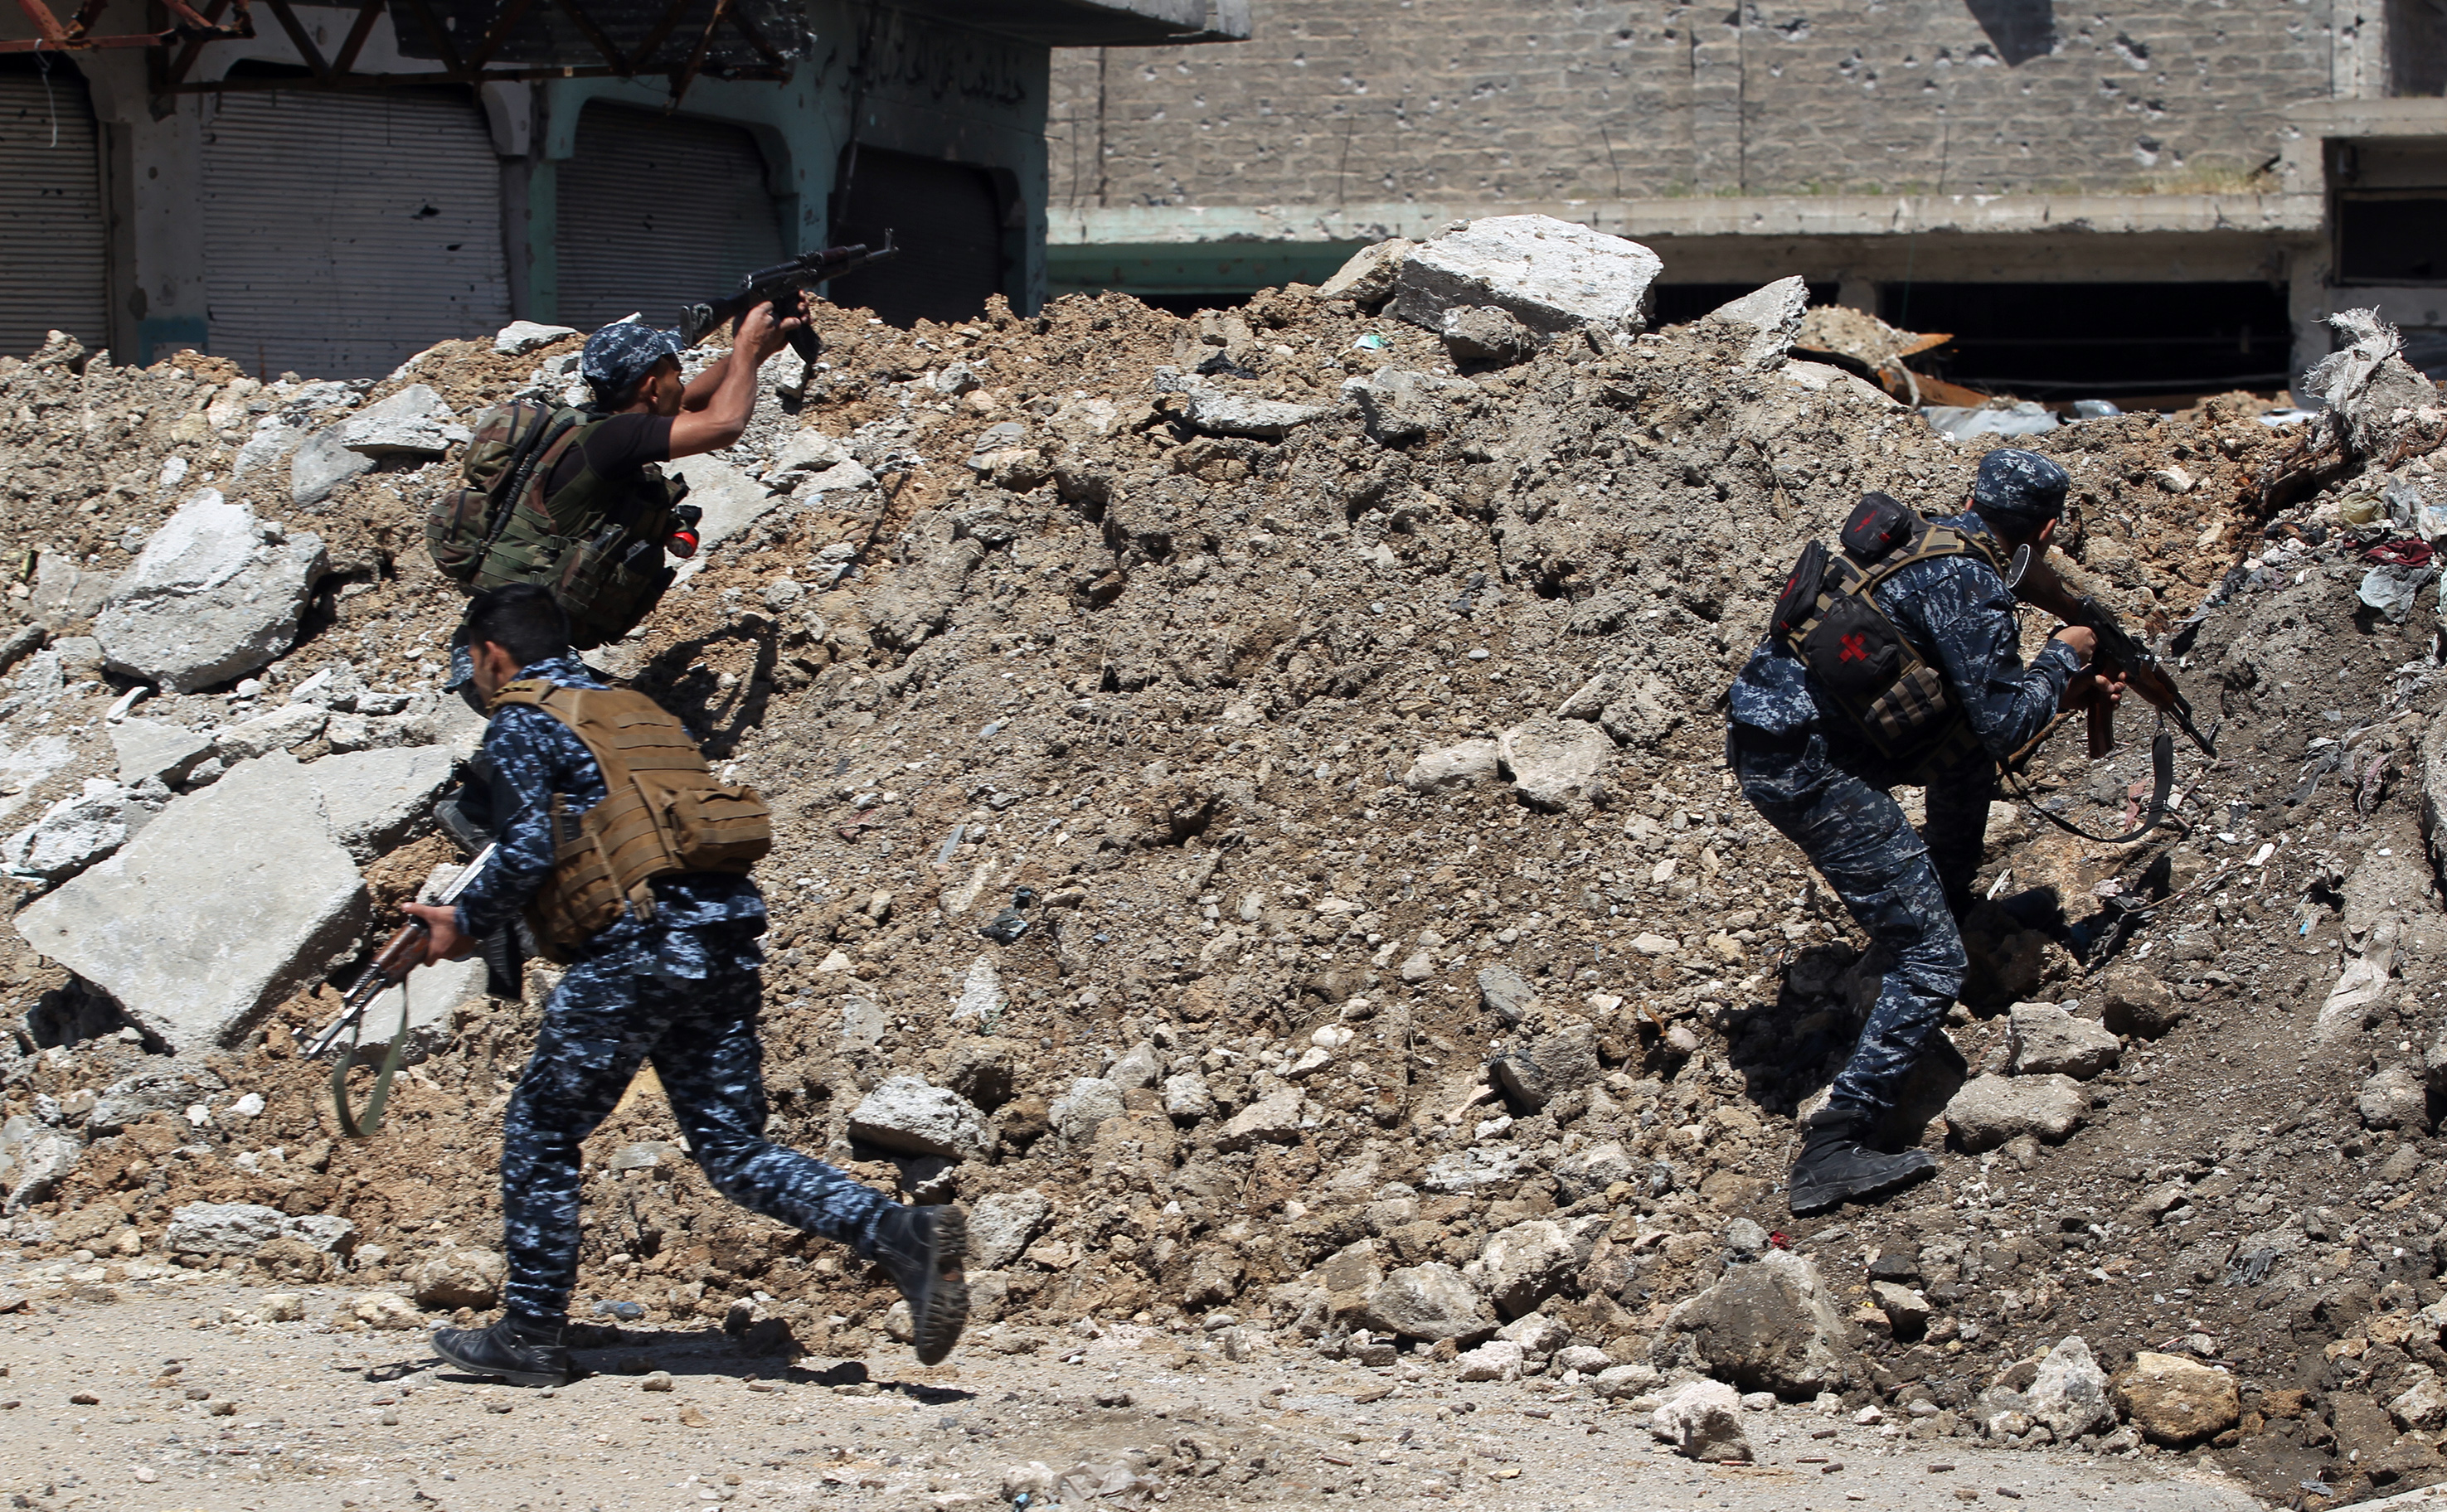 Members of the Iraqi military shoot suppressive fire while taking cover behind a barrier made of debris in the old city of Mosul during the offensive to recapture the city from ISIS fighters, on April 16, 2017.